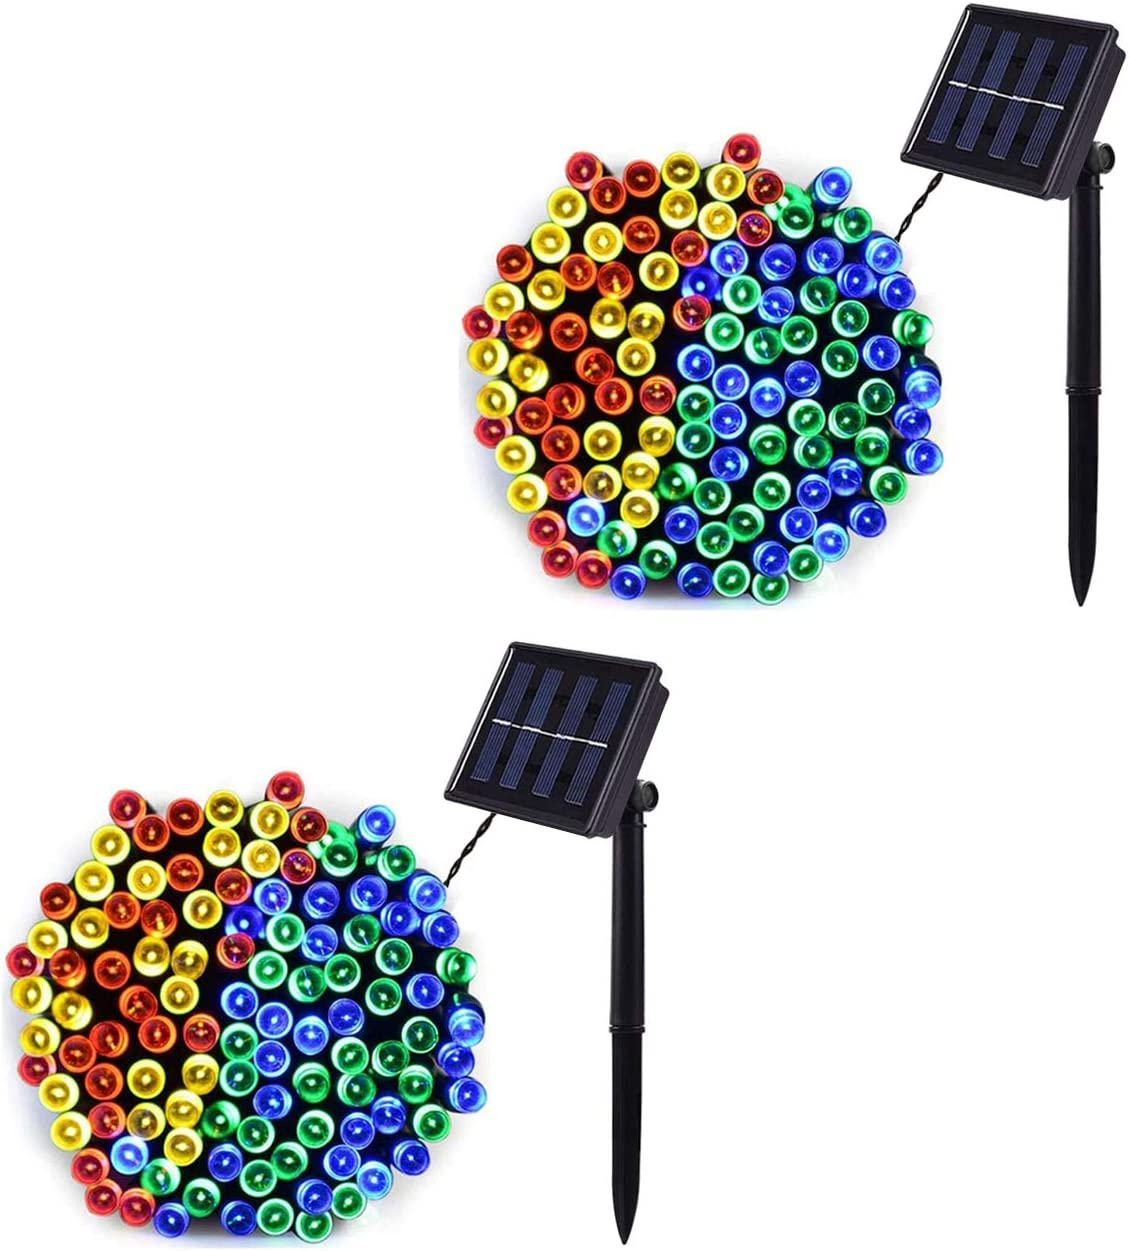 Baimo 2 Pack 33ft Solar String Lights, 100 LED 8 Modes Waterproof Fairy Lights for Garden, Tree, Yard, Christmas, Wedding, Party Outdoor Indoor (Multicolor)